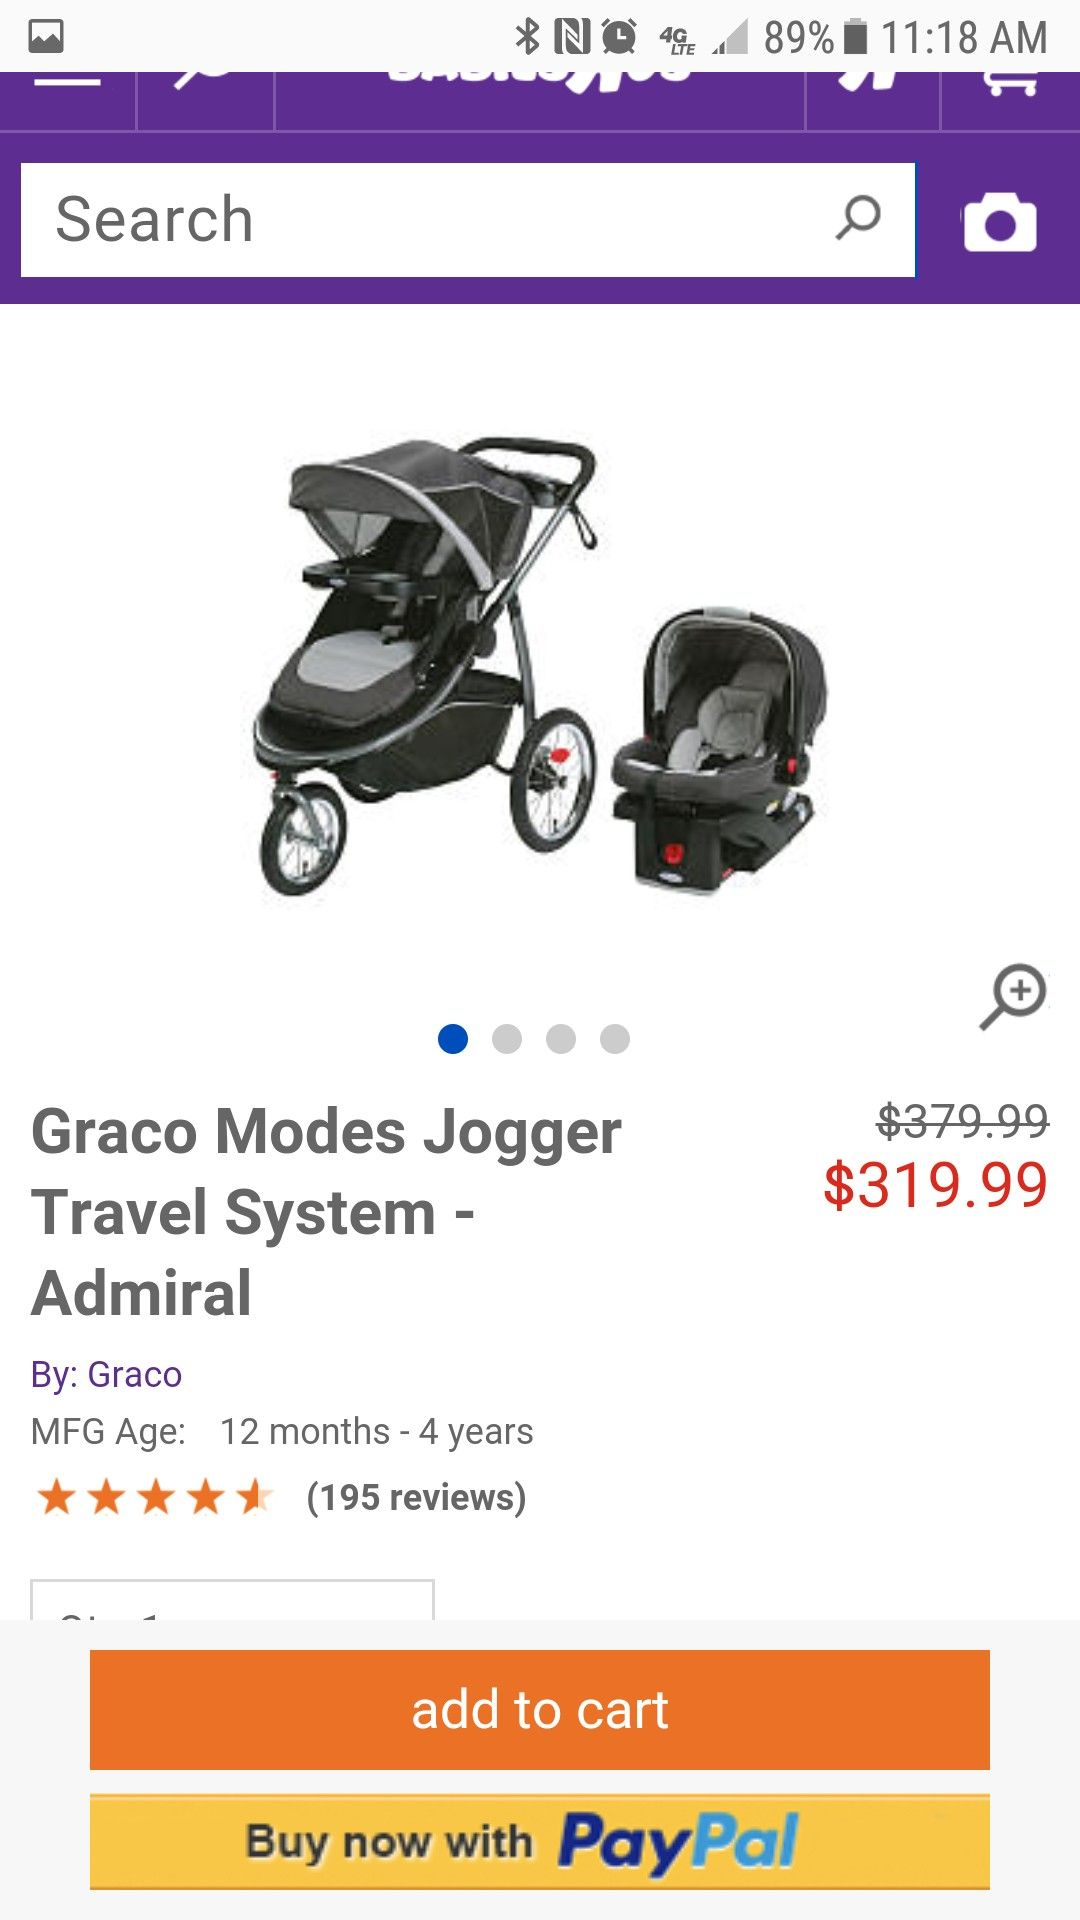 Pin by Andrea Koehler on Registry Travel system, Graco